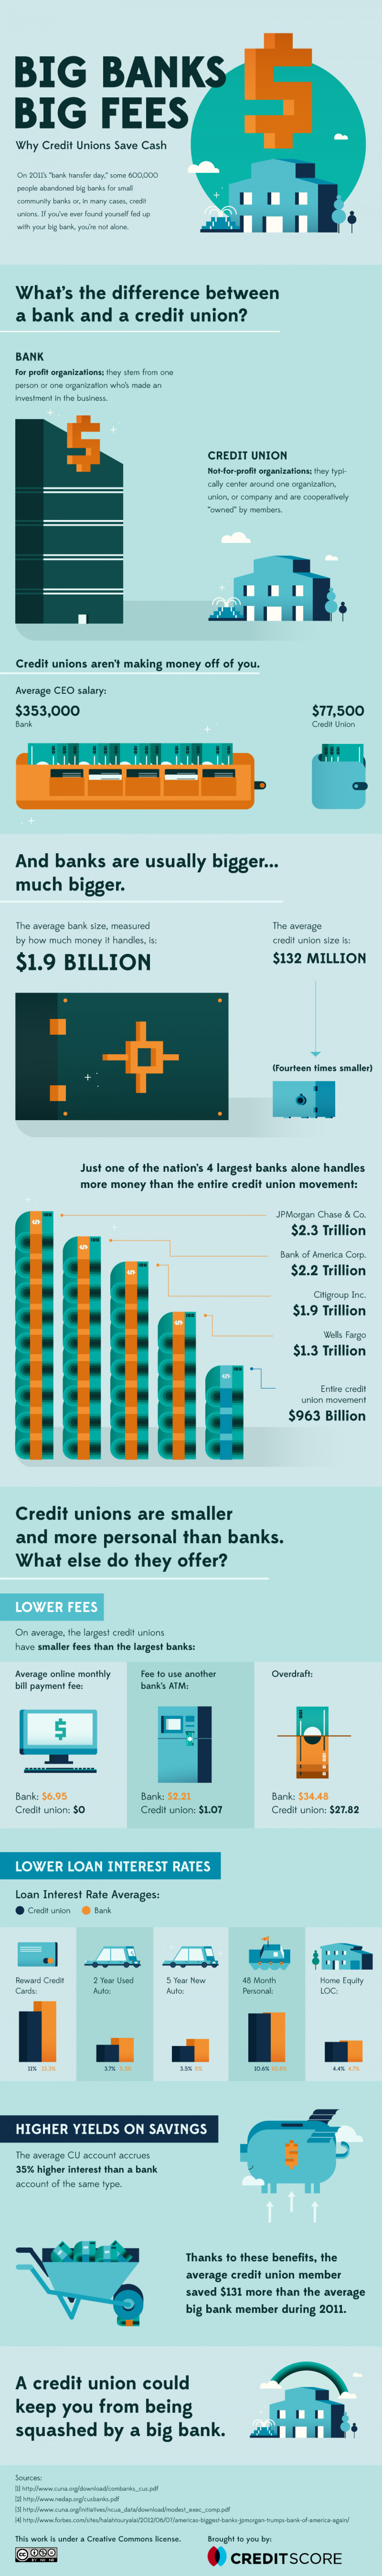 Big Banks, Big Fees Infographic